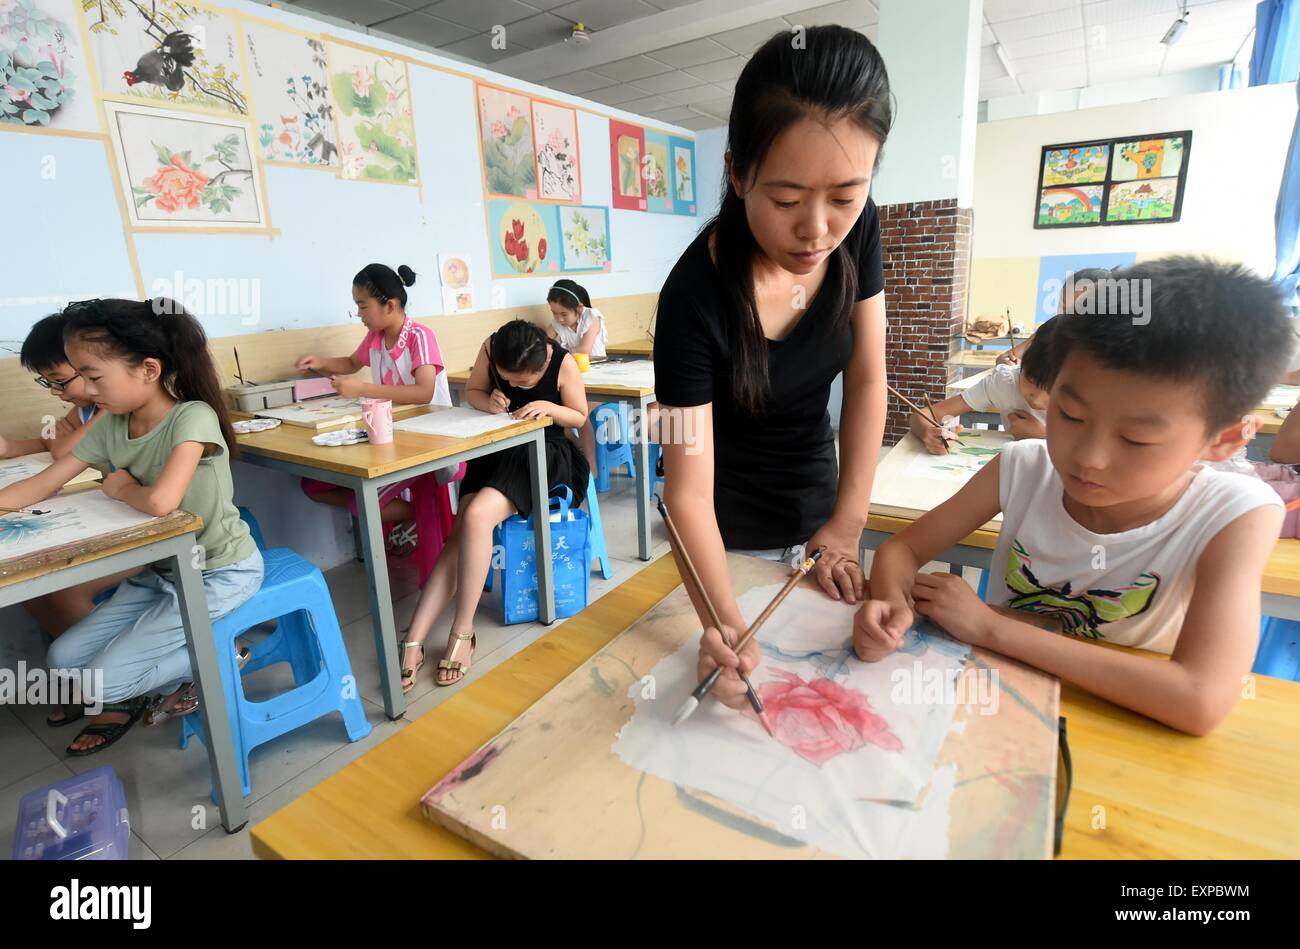 (150716) -- BAZHOU, July 16, 2015 (Xinhua) -- Children learn to paint at an interest class in Shengfang Township - Stock Image